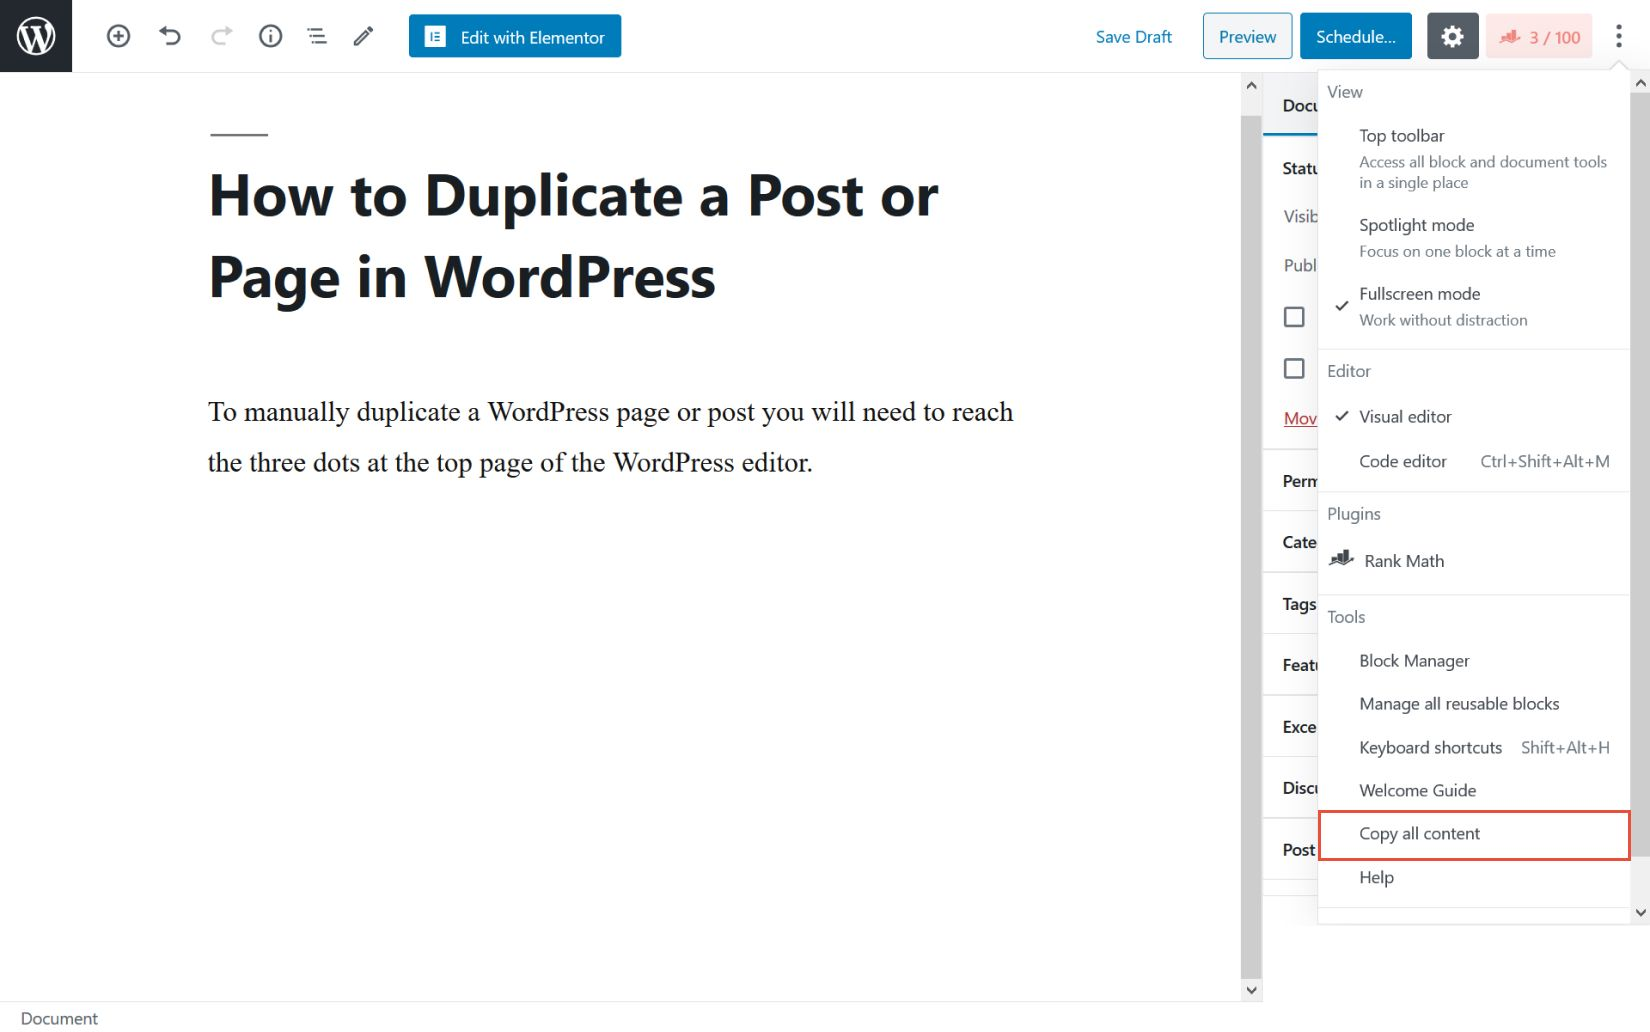 Manually duplicate a page or post in WordPress